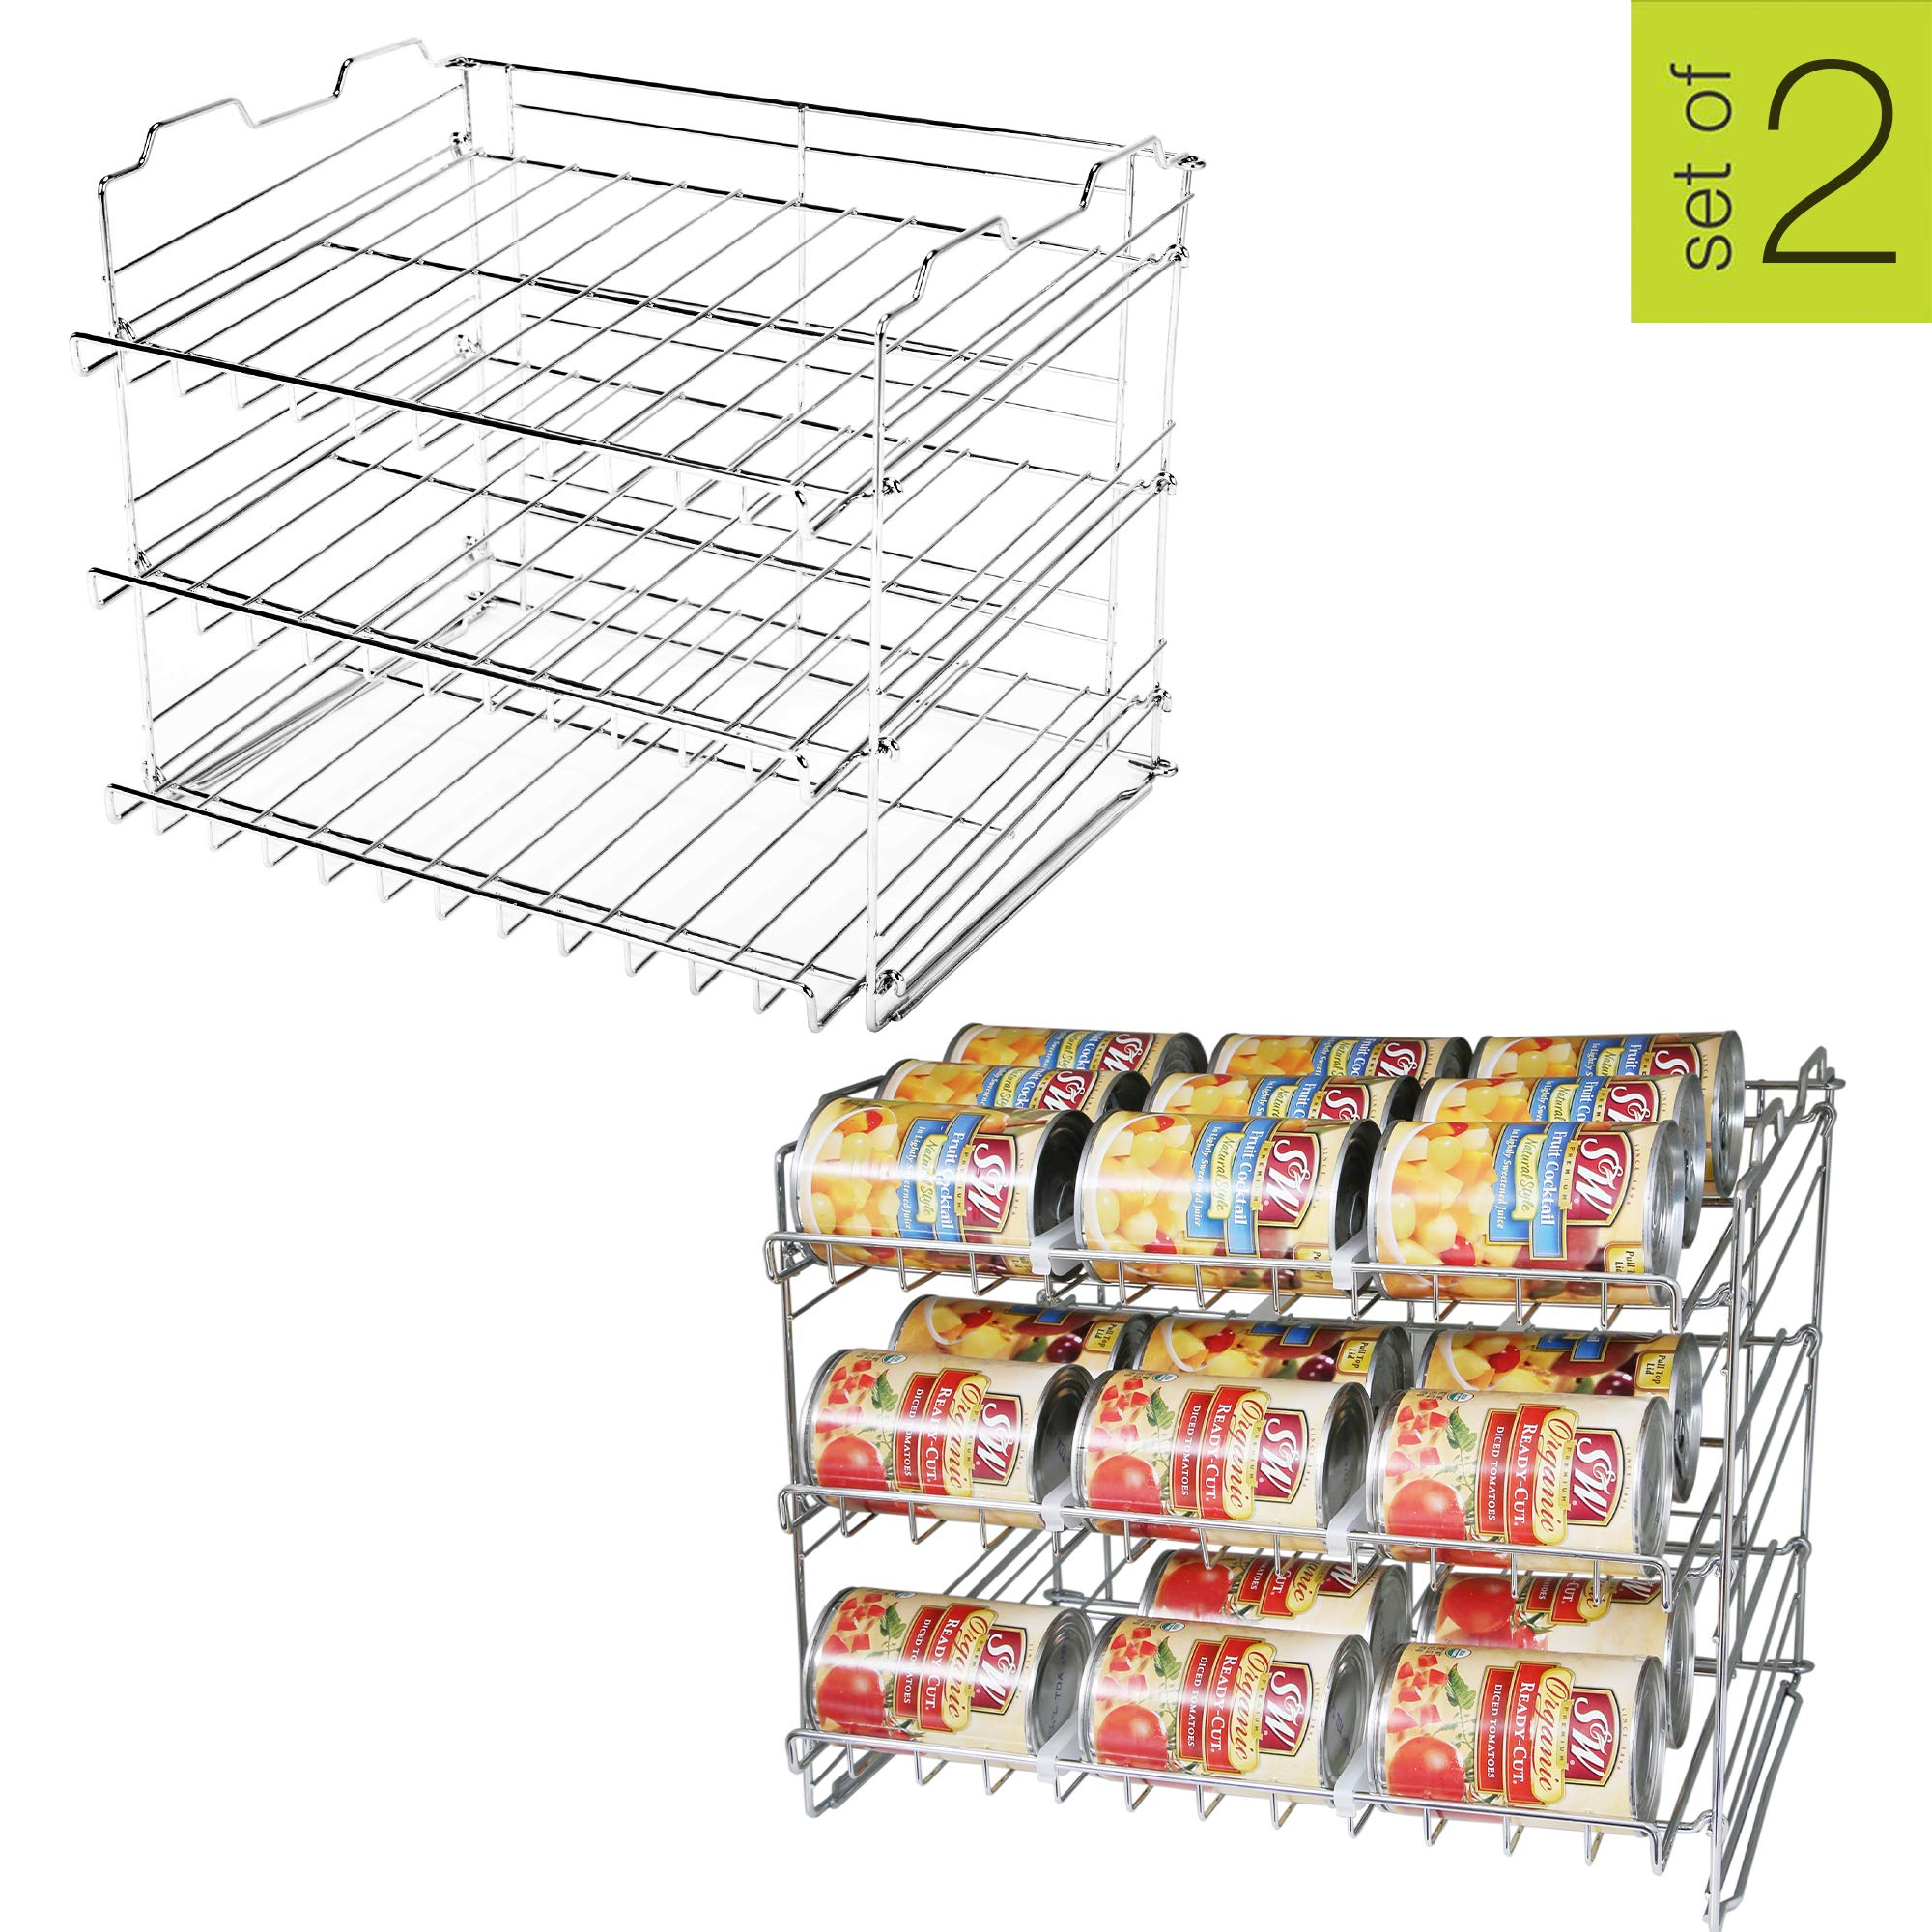 Smart Design Premium 3 Tier Can Rack Organizer w/Adjustable Shelves - Steel Wire Frame - for Cans, Jars, Cooking Ingredients Organization - Kitchen (17.5 x 13.625 Inch) (Chrome) - Set of 2 by Smart Design